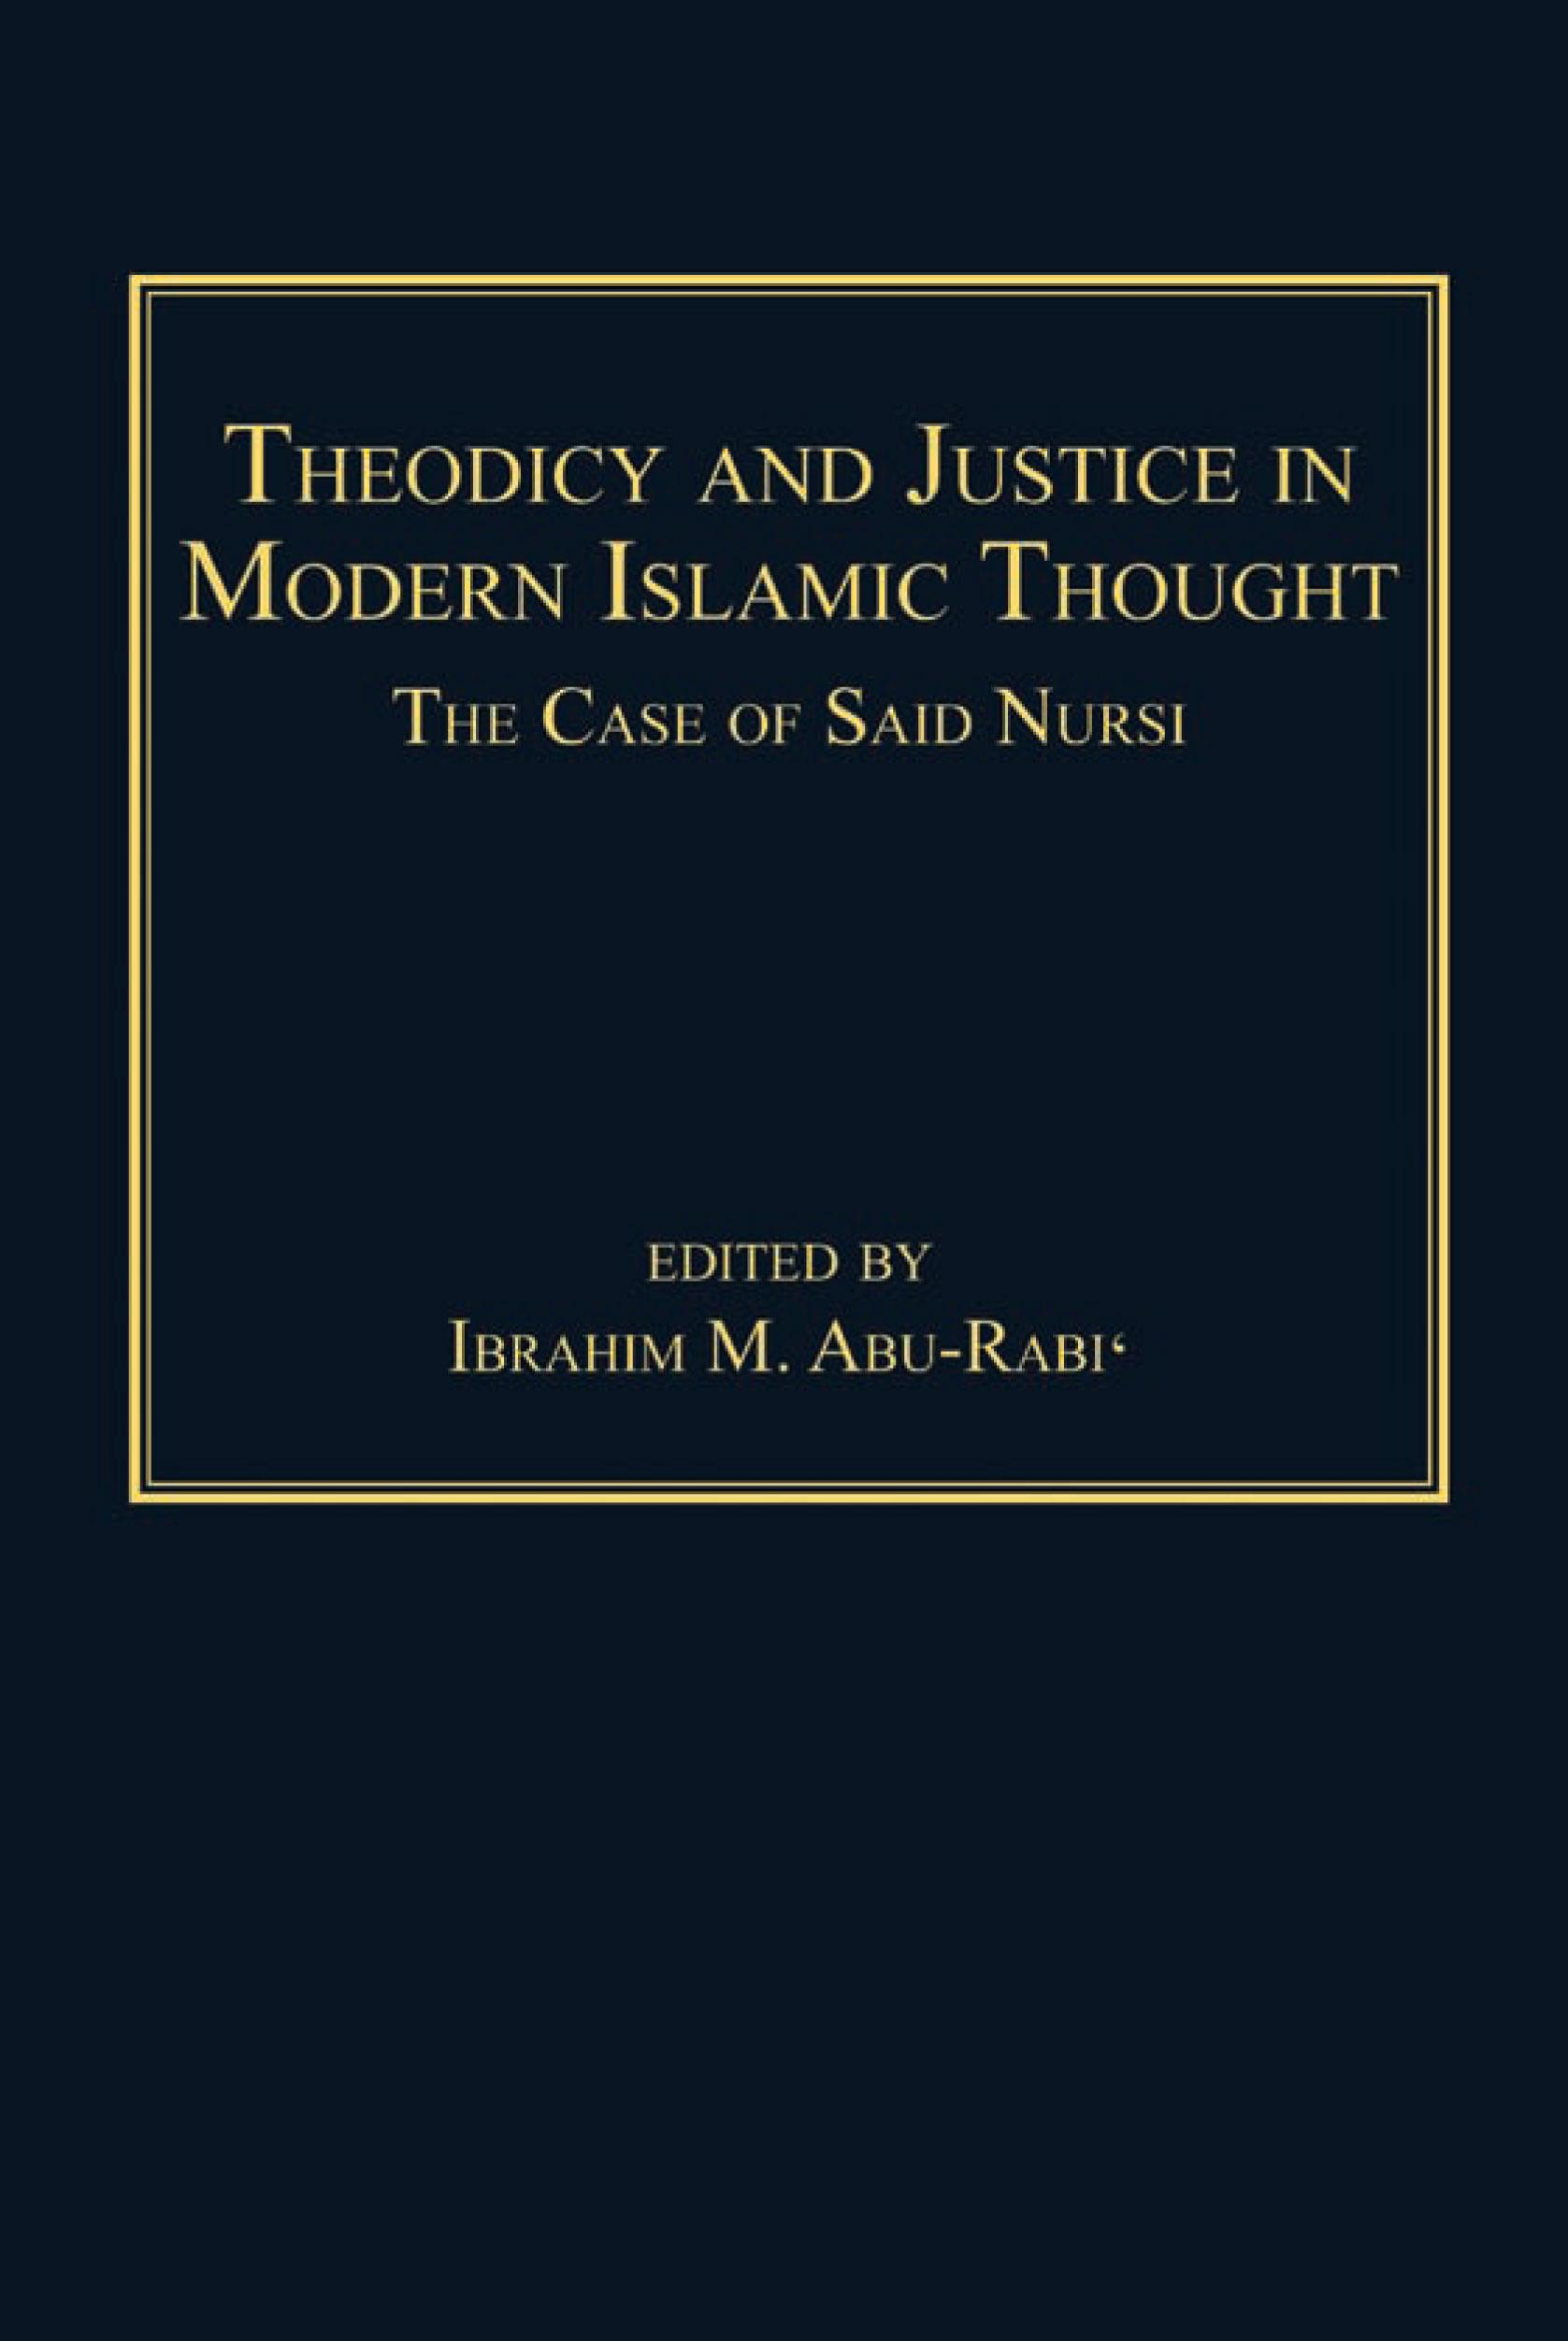 Theodicy and Justice in Modern Islamic Thought: The Case of Said Nursi EB9781409406198